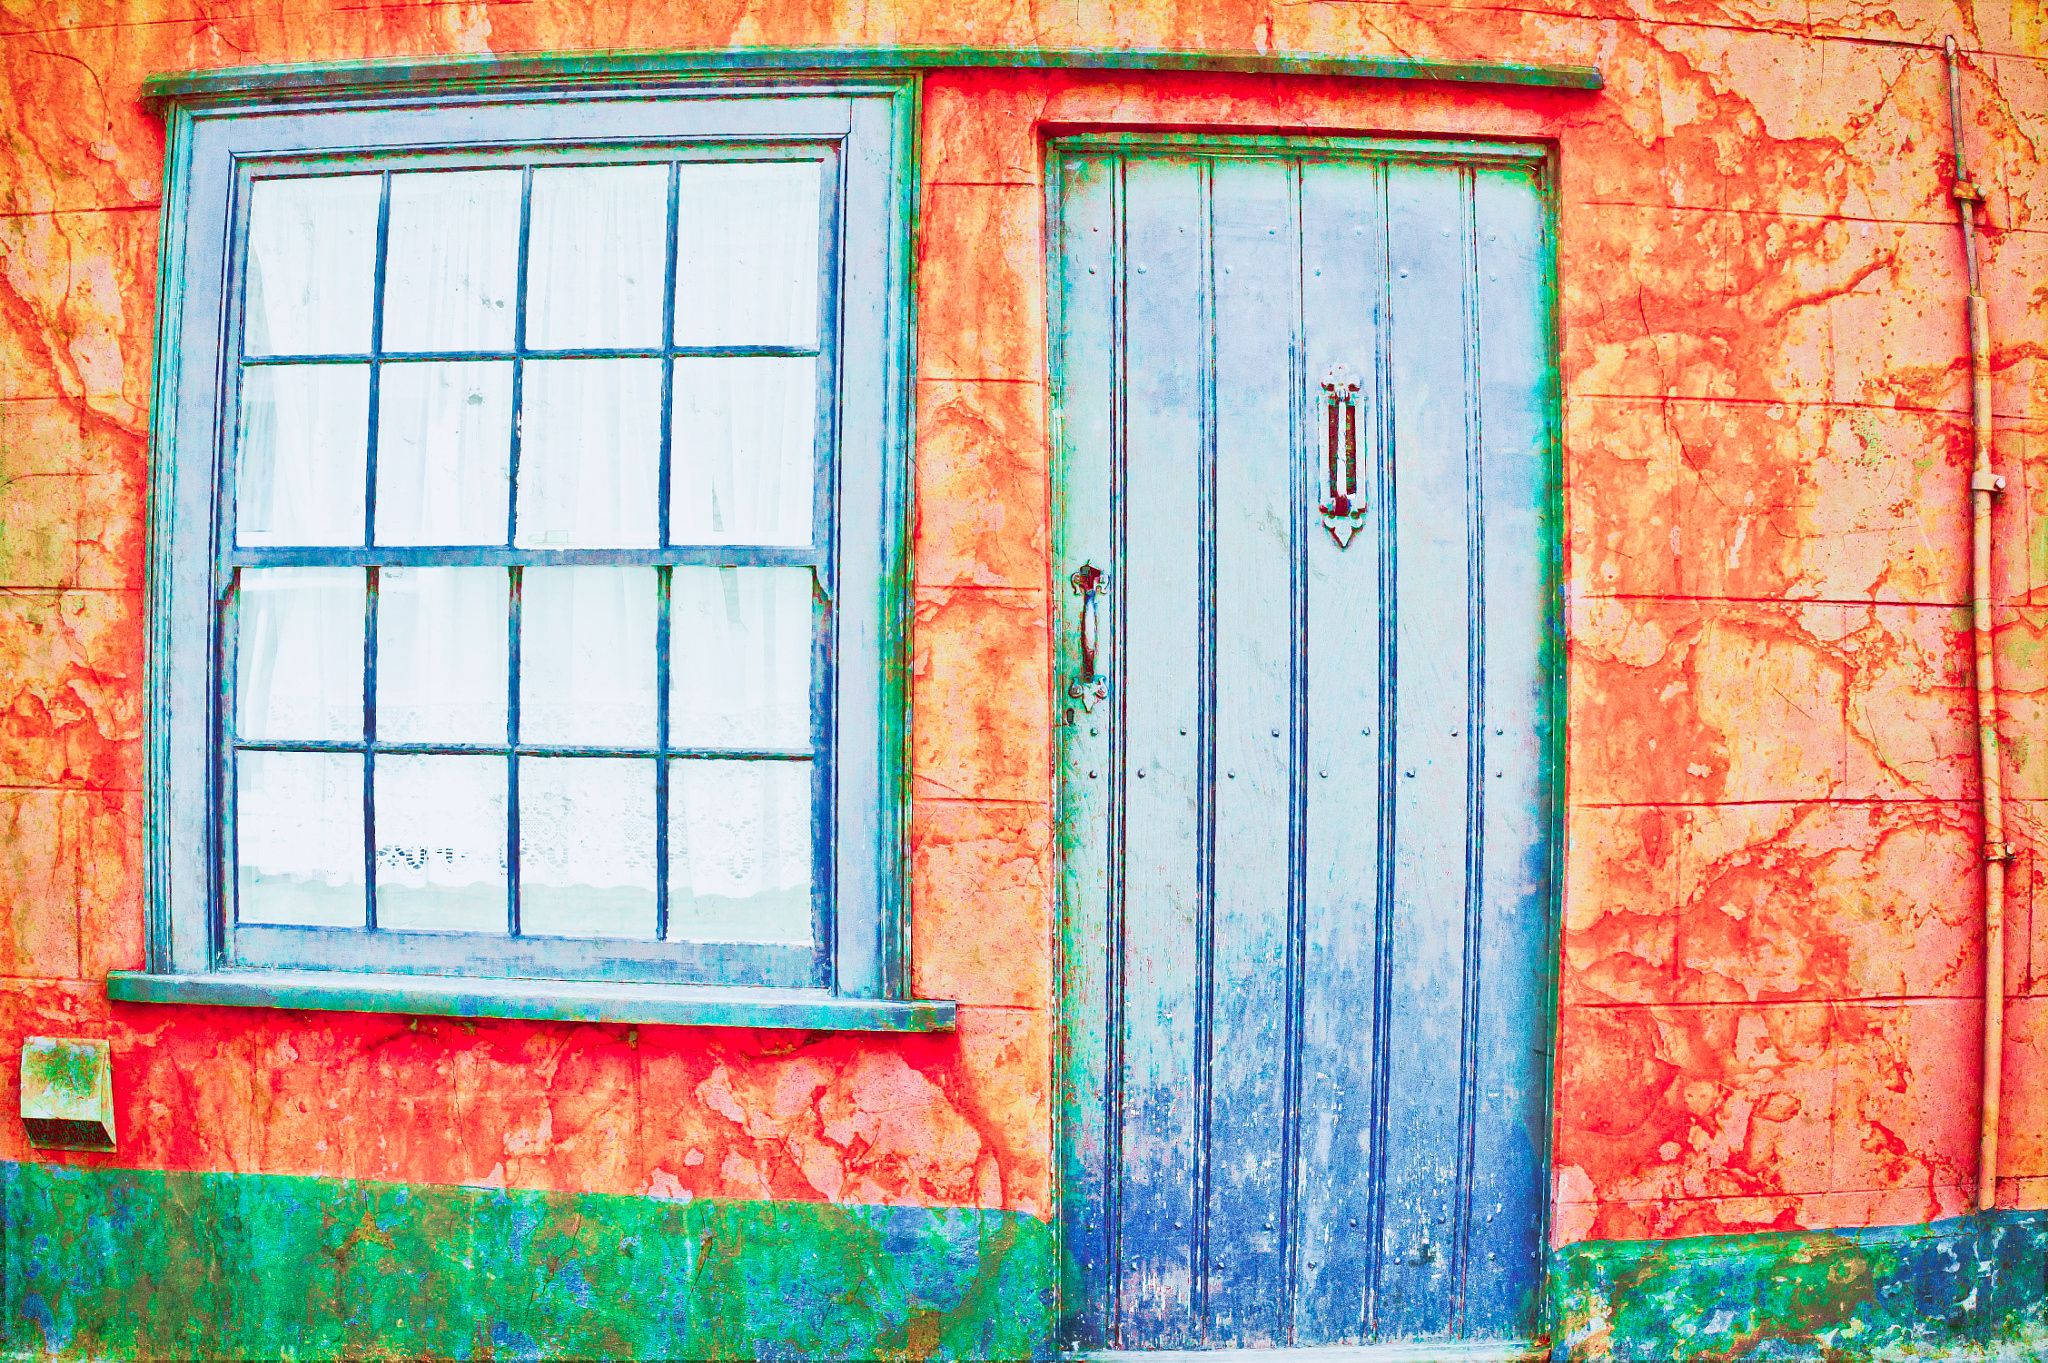 English cottage - A bright orange english cottage with a blue door and window